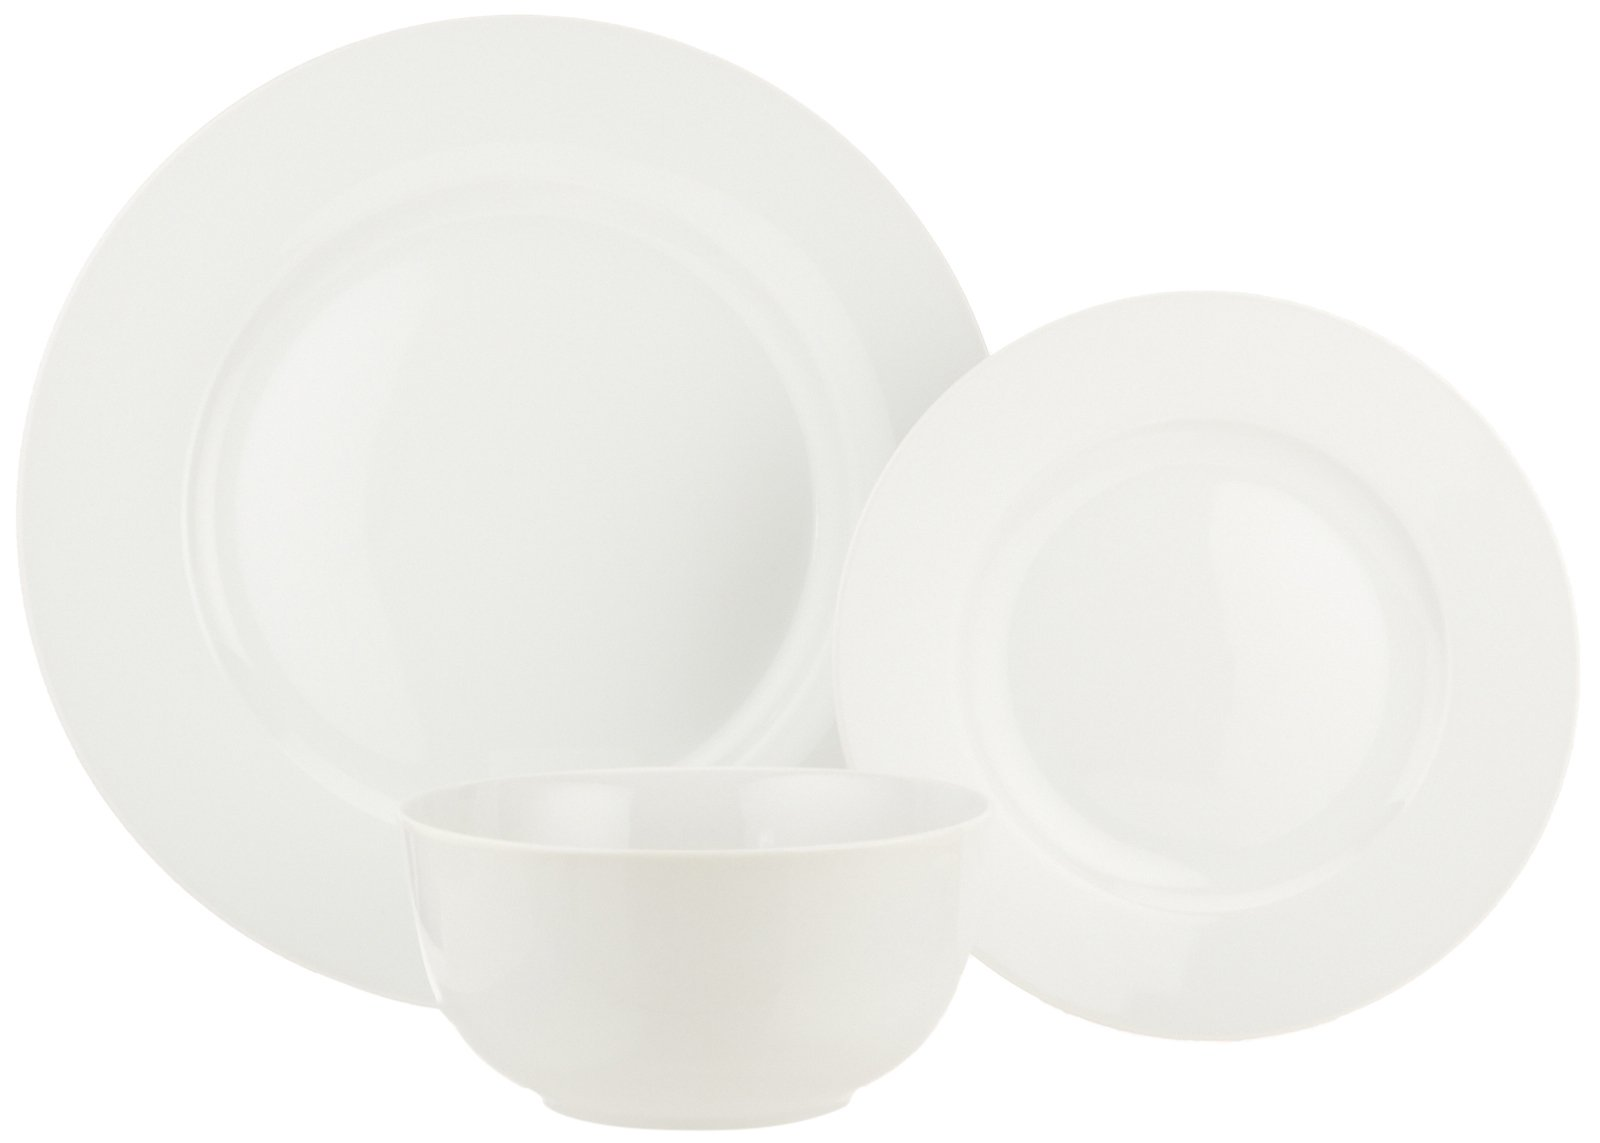 AmazonBasics 18-Piece Dinnerware Set, Service for 6 by AmazonBasics (Image #6)